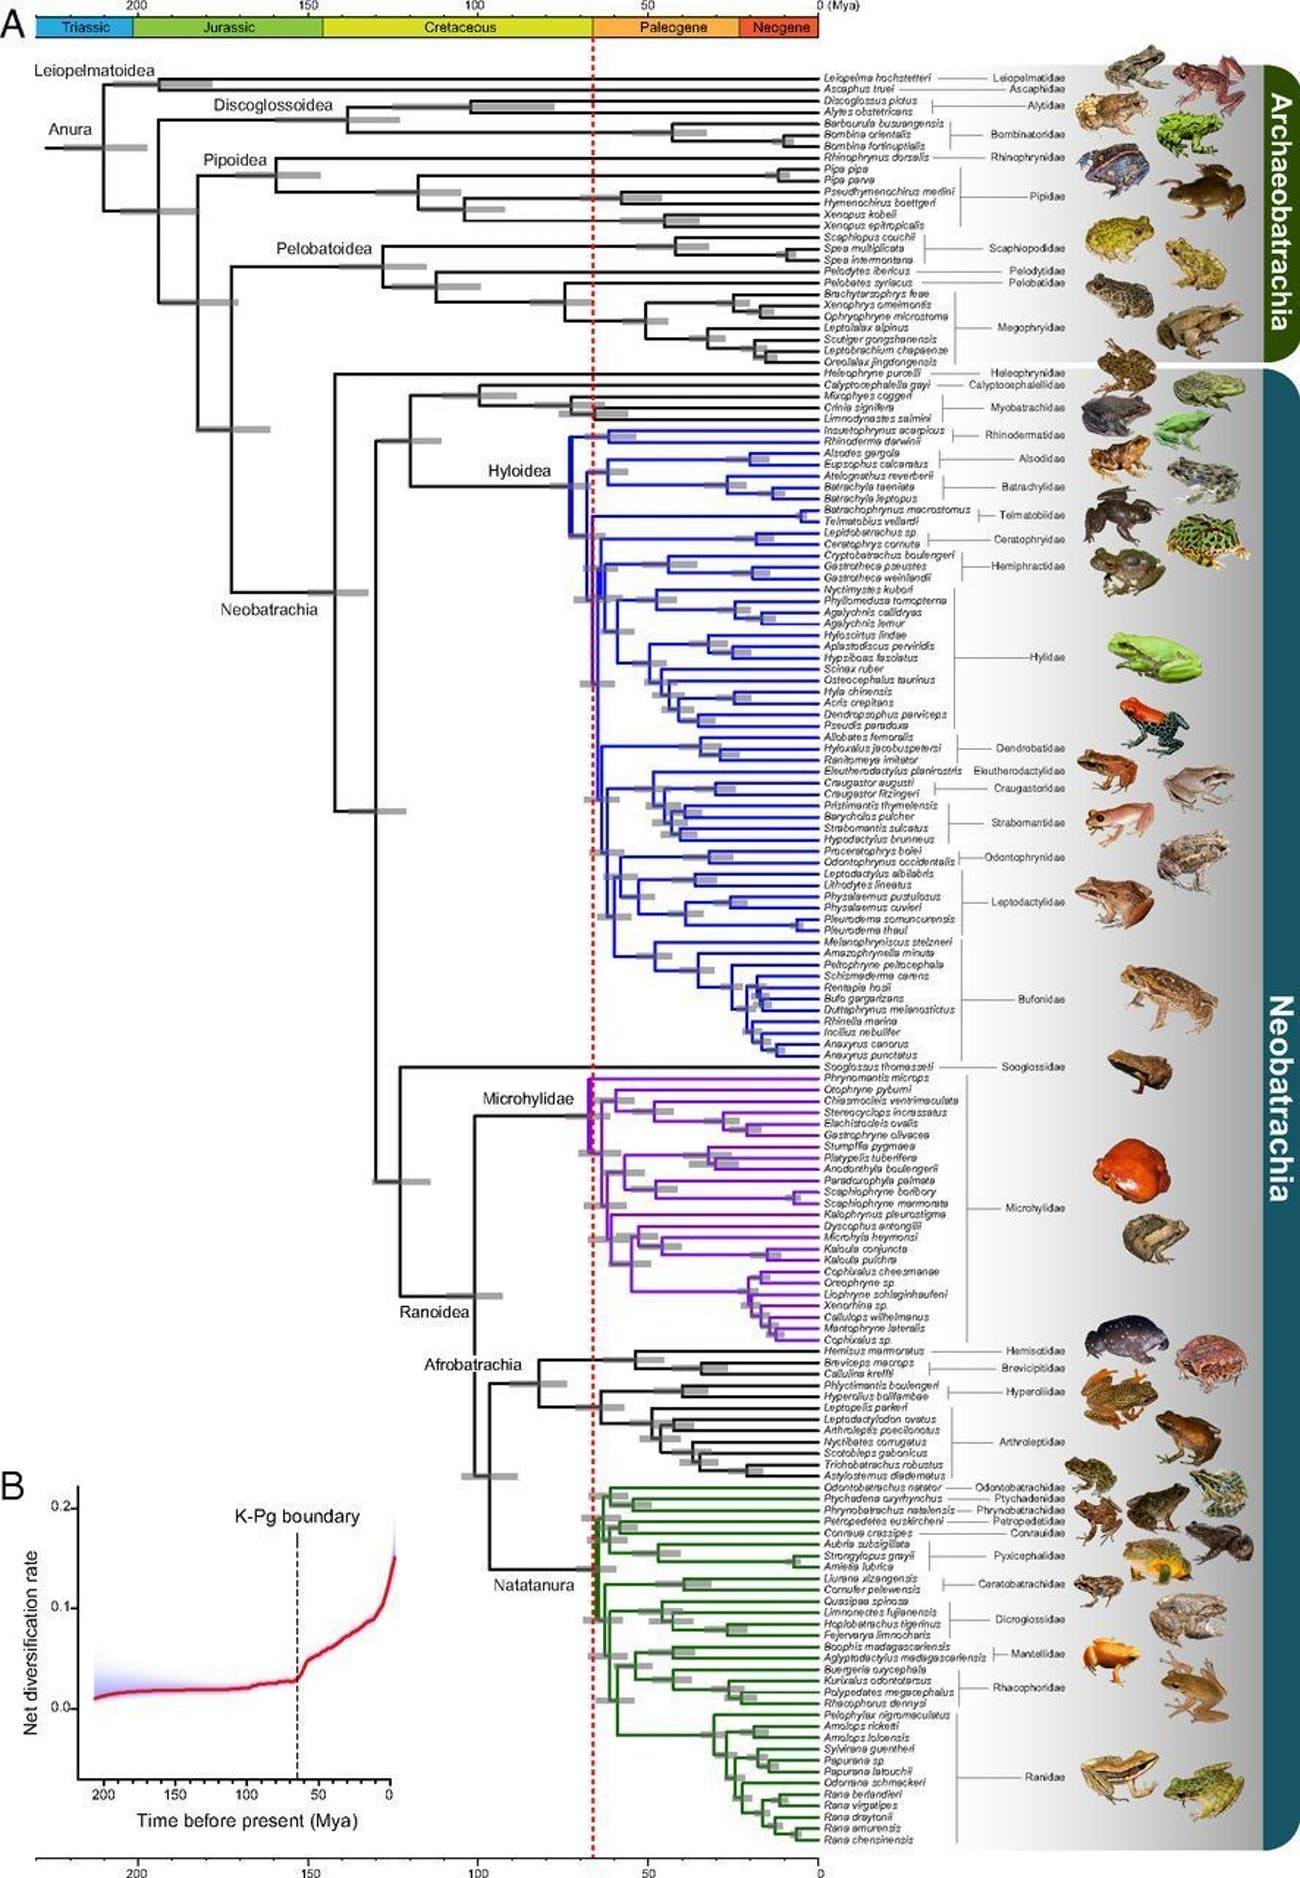 Time-calibrated phylogenetic tree of frogs and the pattern of net diversification rate across time.